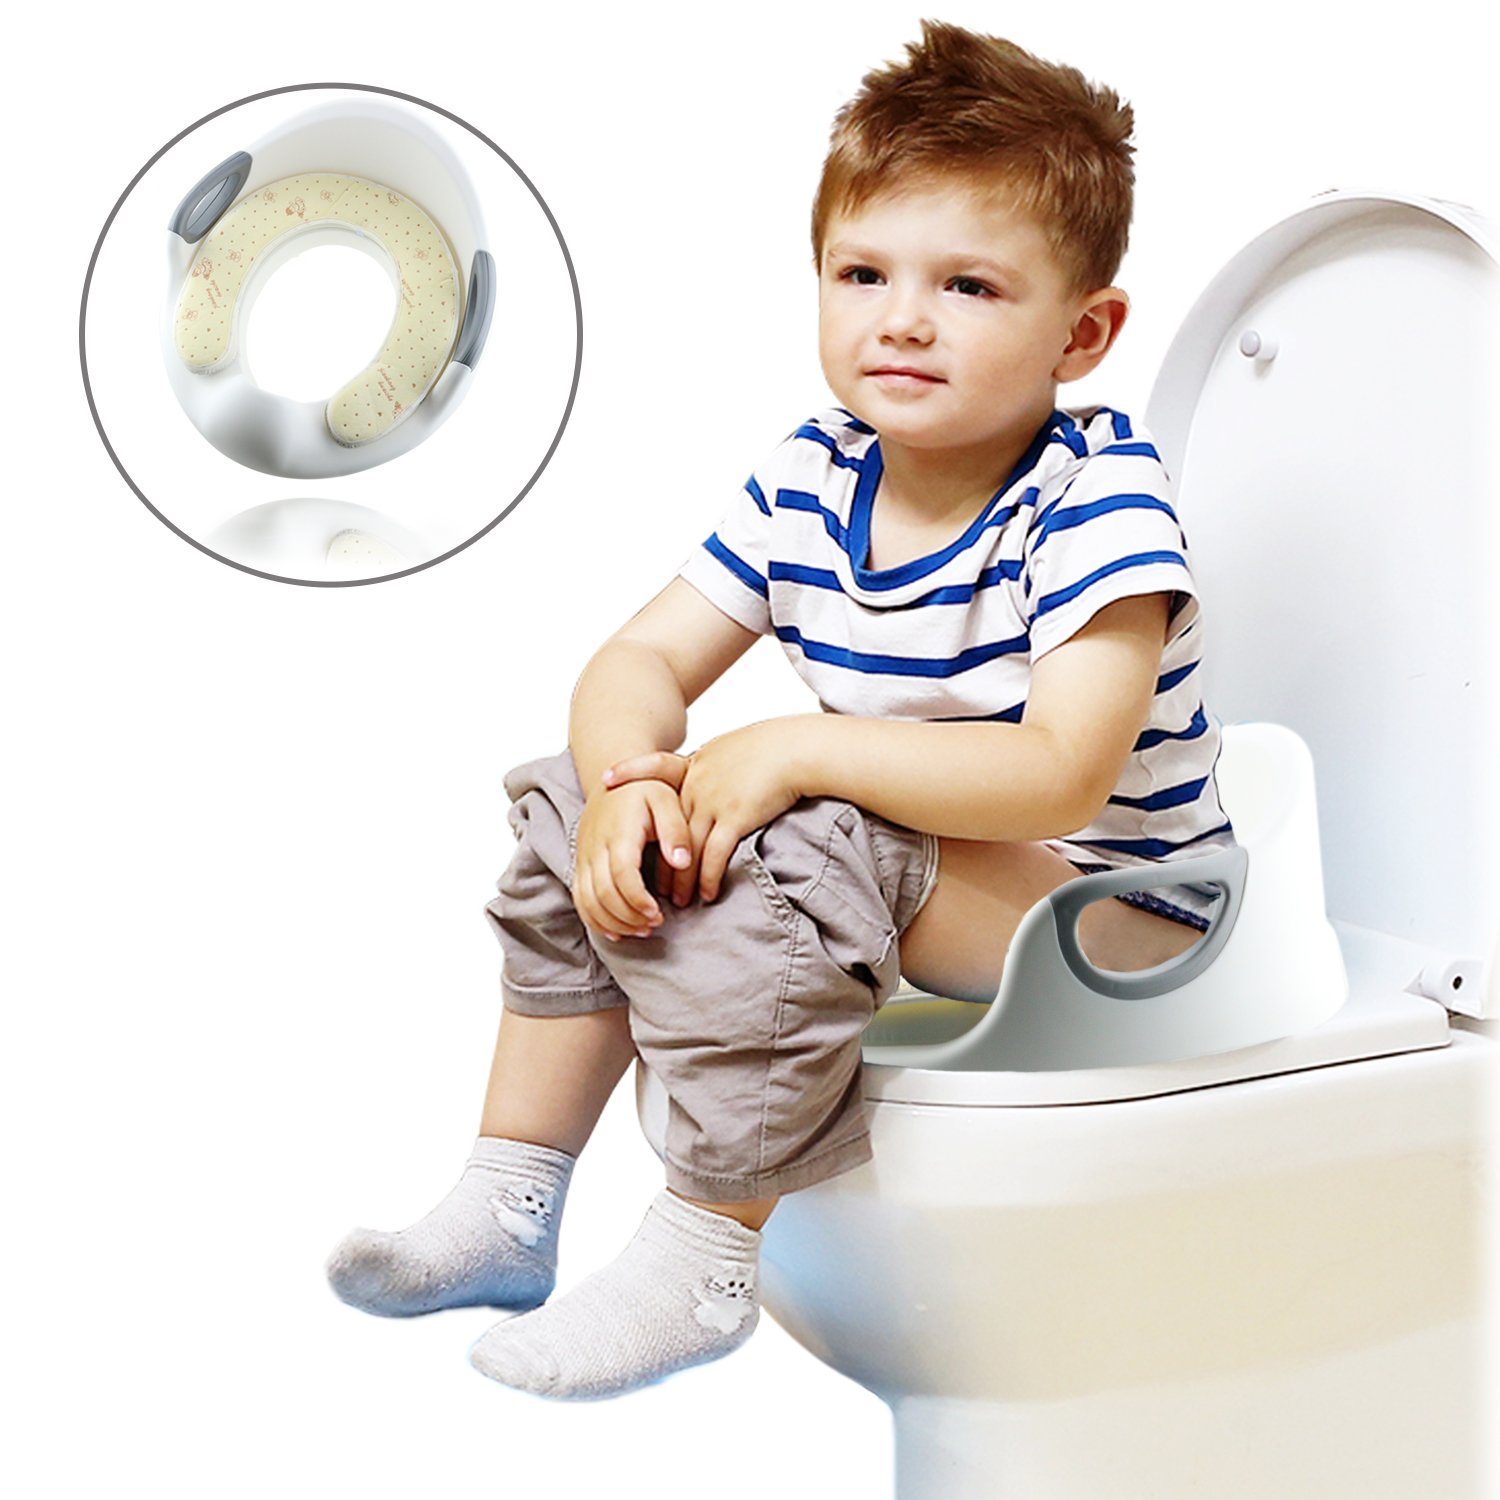 Potty Training Seat for Boys and Girls, Toilet Training Seat Toilet Seat Chair for Baby with Cushion Handle and Backrest Fits Round & Oval Toilets Sanmersen